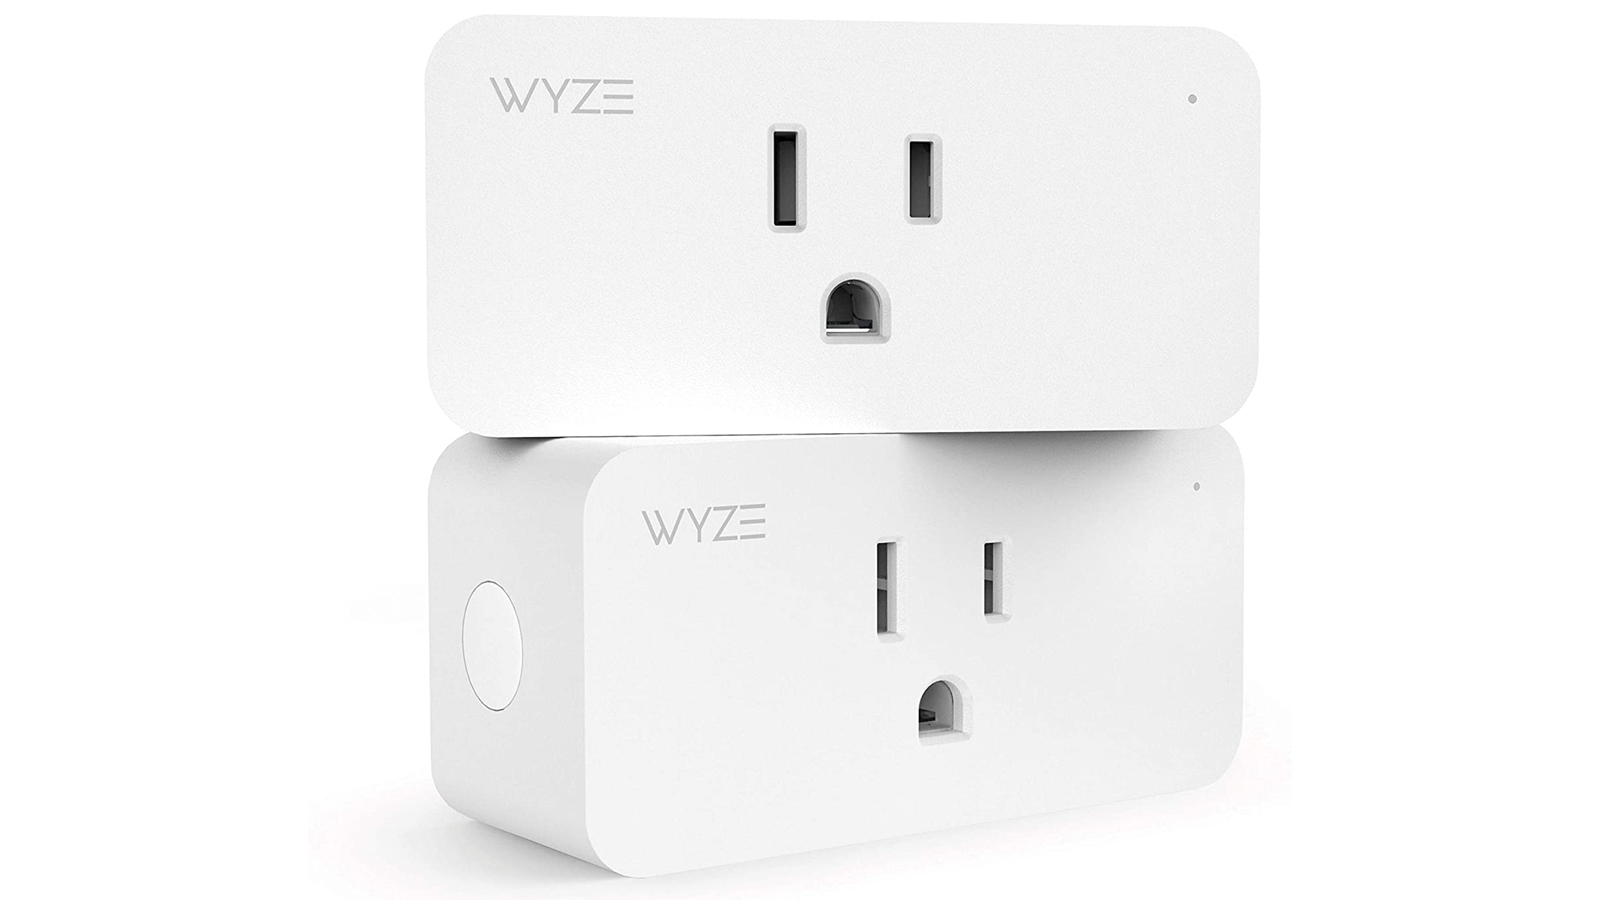 Two Wyze Plugs stacked on one another